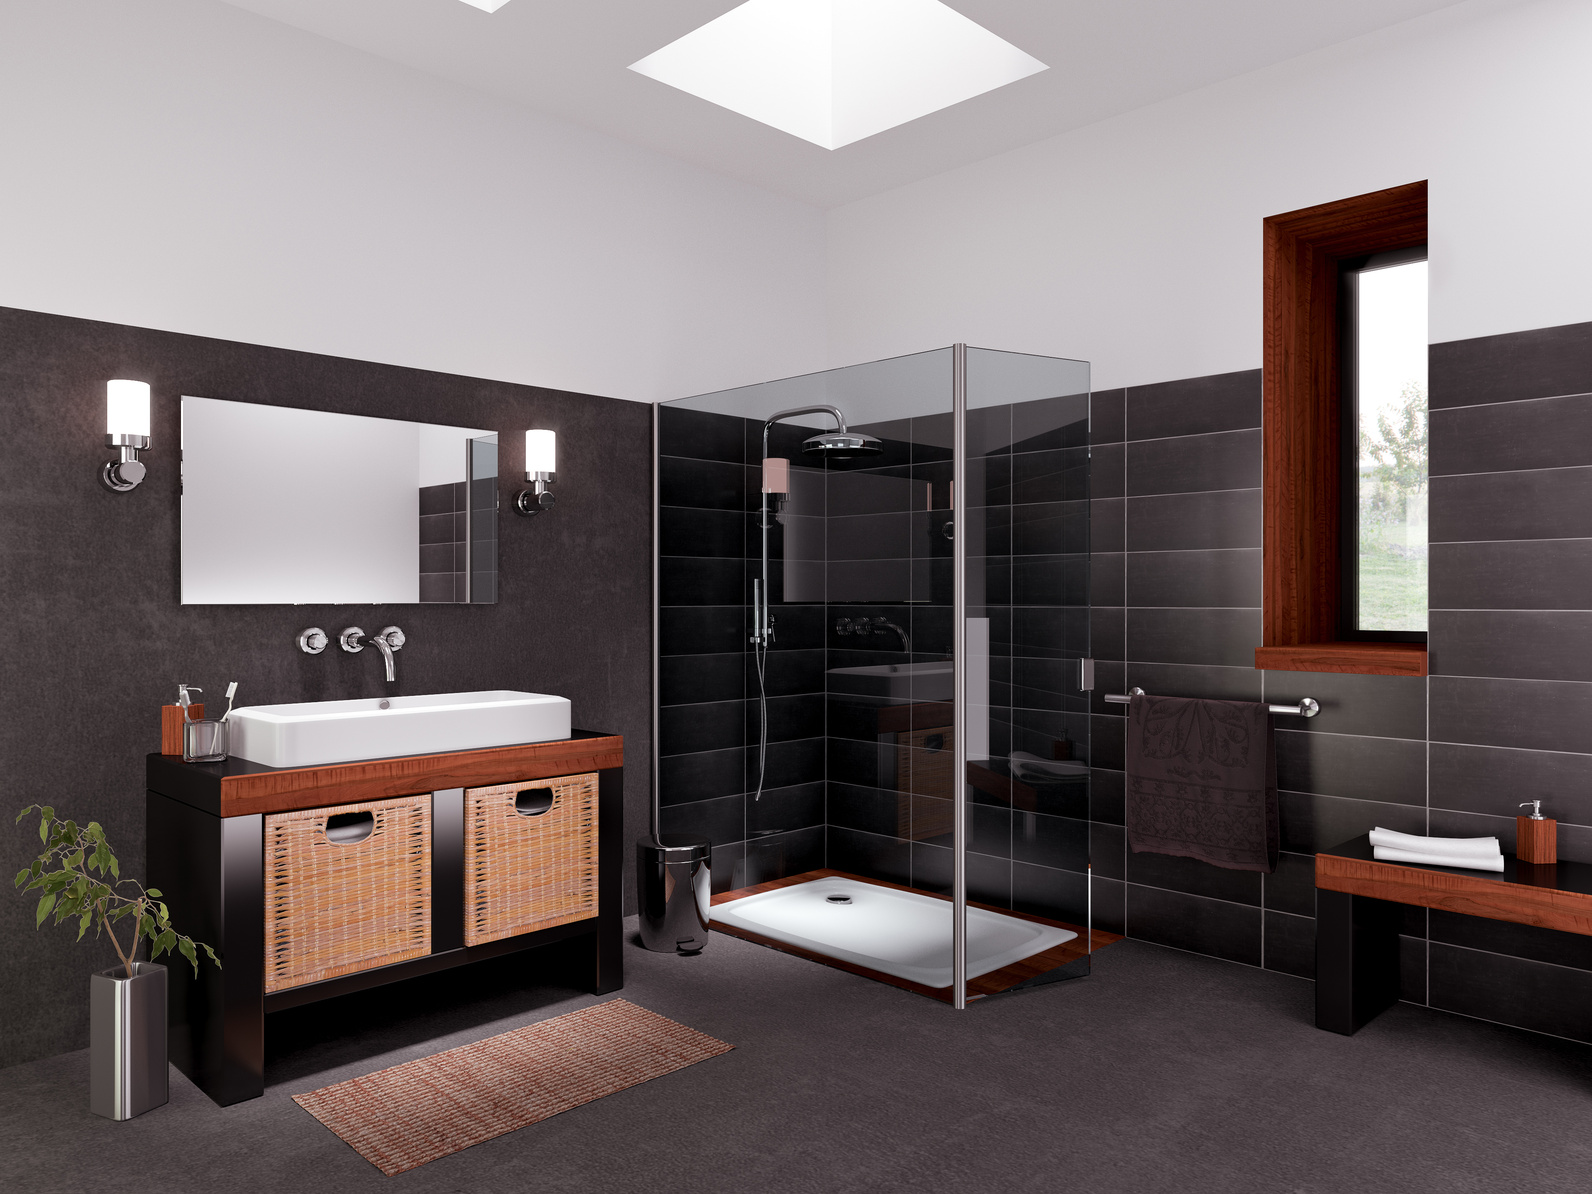 3D Modeling and Rendering of A Bathroom